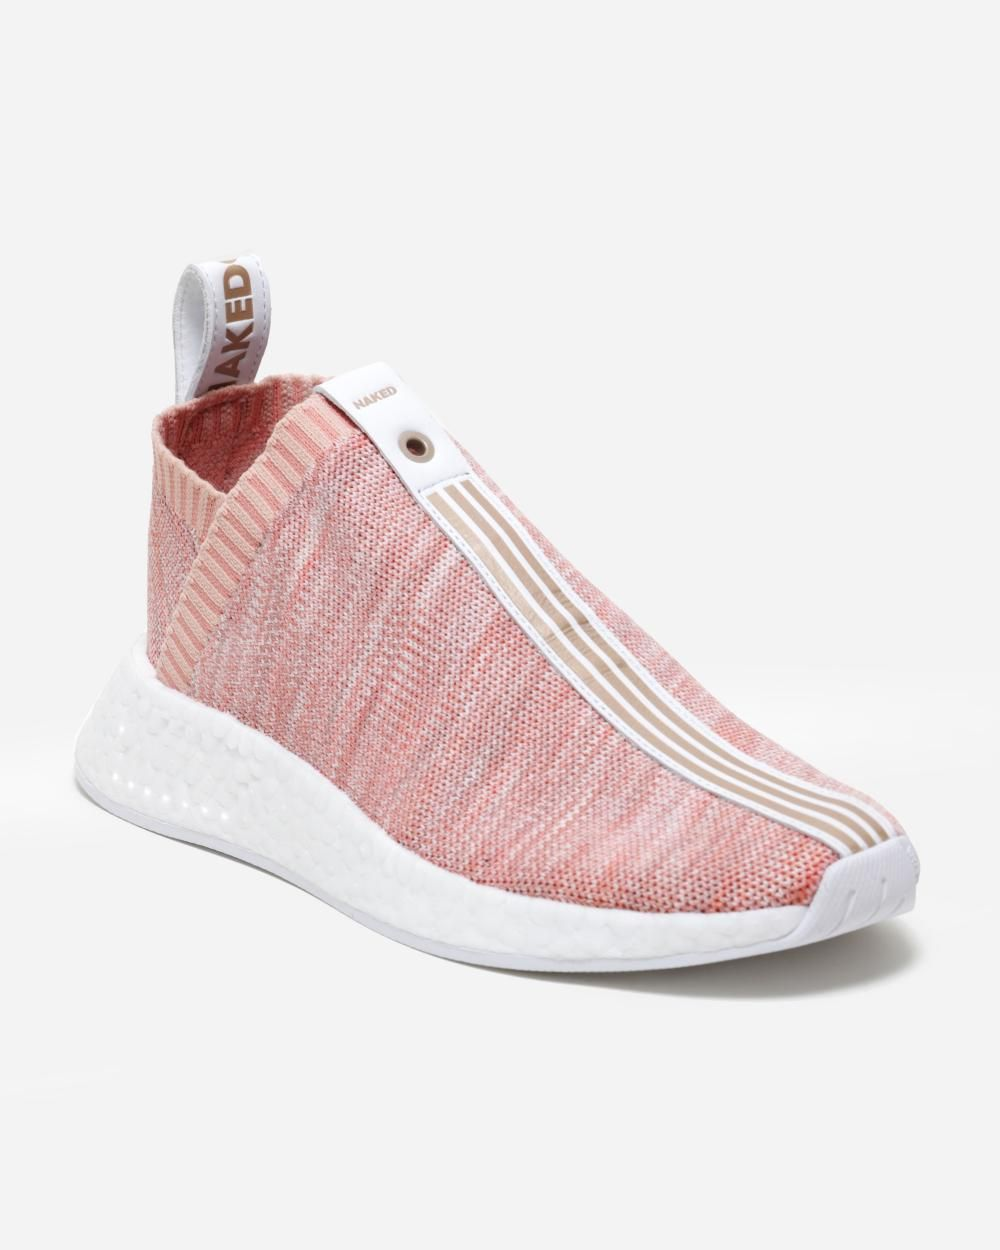 check out 301a0 0d85b Adidas Originals - Naked x Kith x adidas Consortium NMD CS2